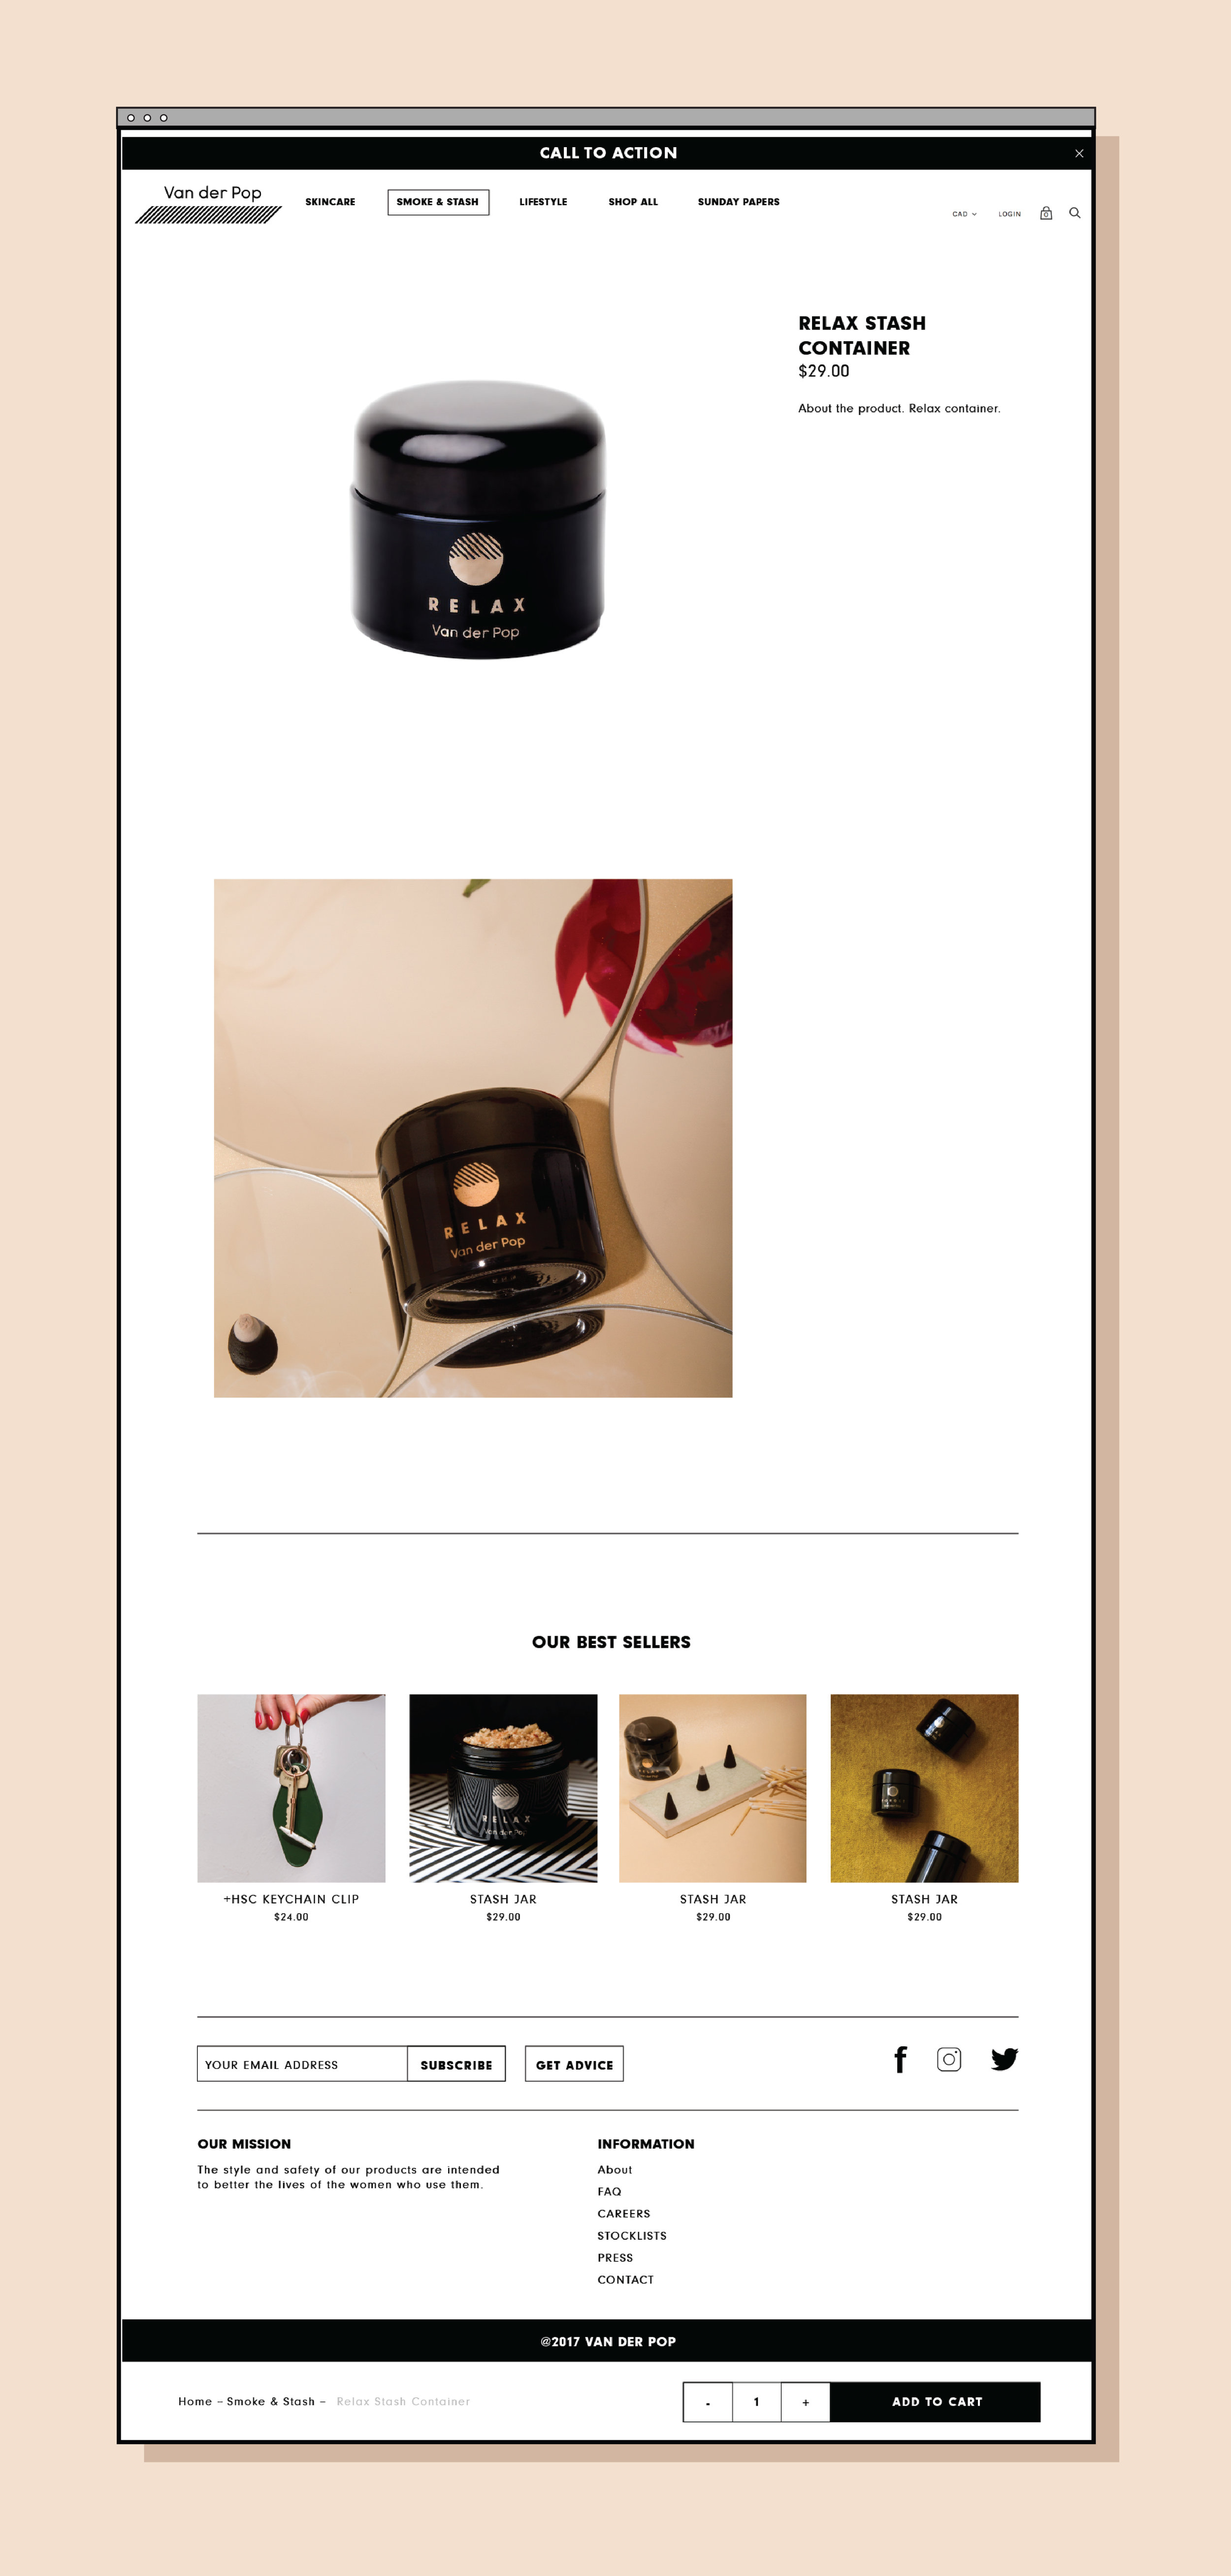 product_page-05.jpg